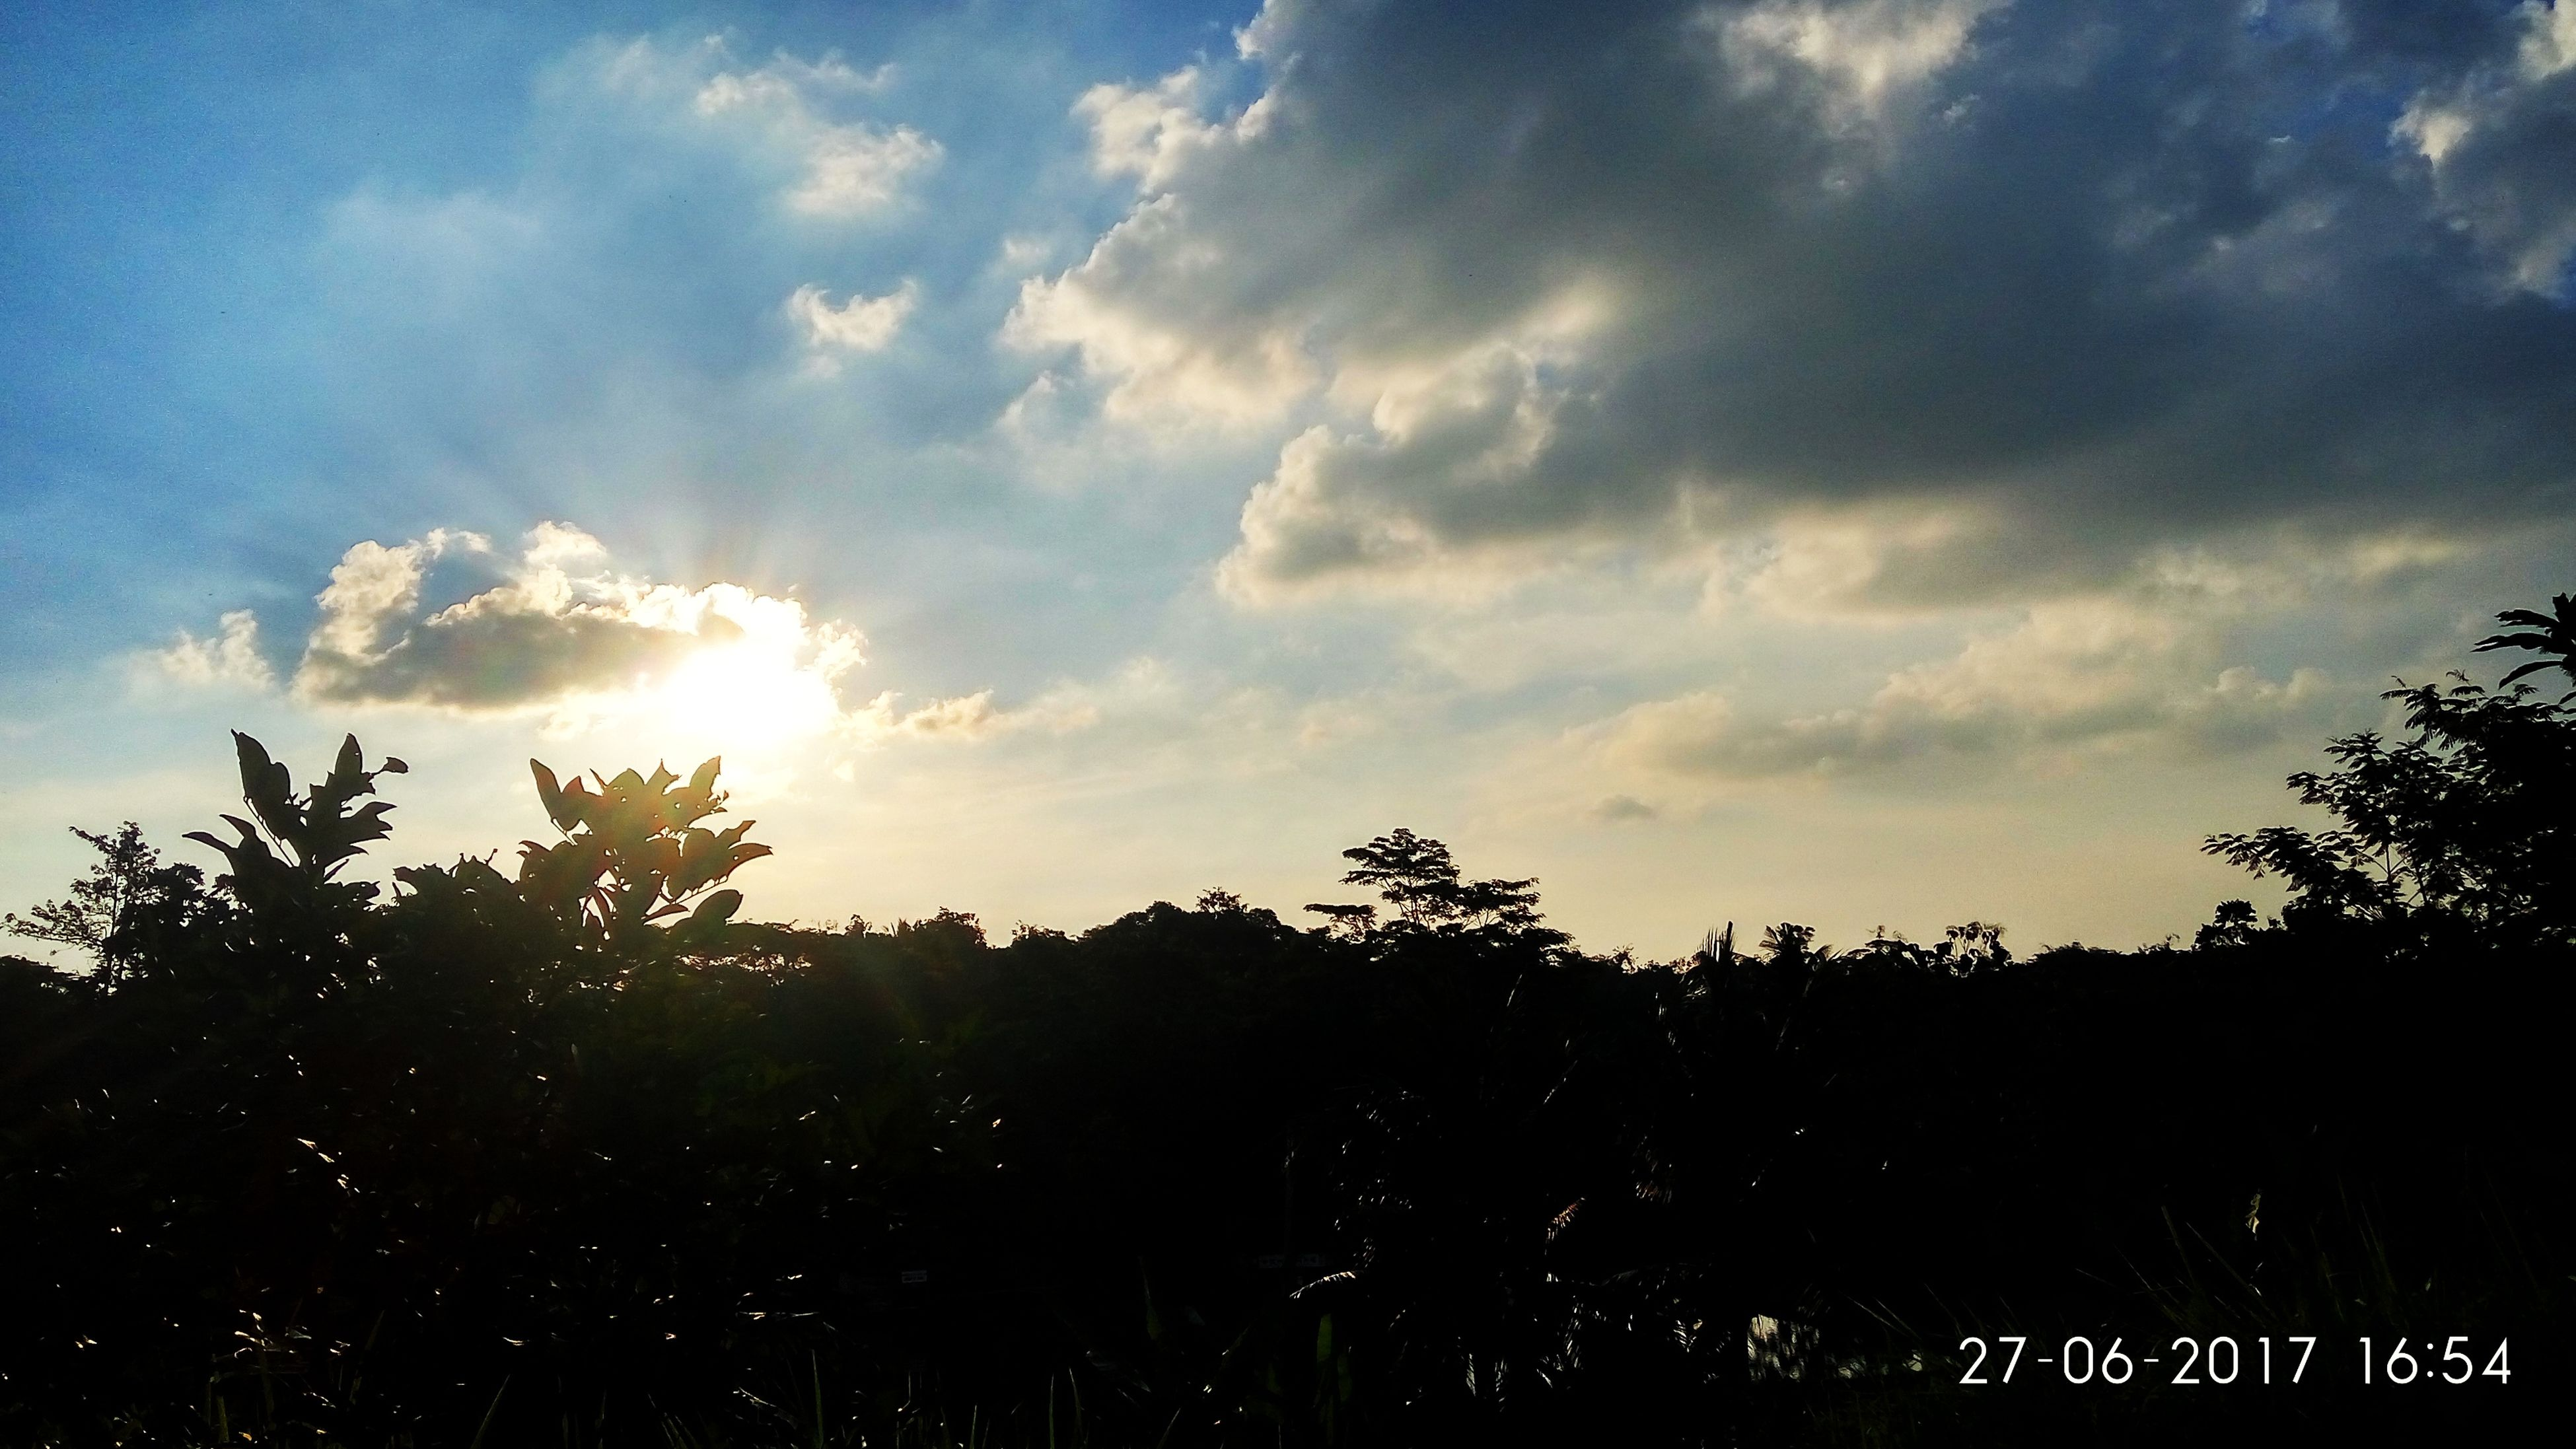 nature, sky, tree, sunset, silhouette, tranquility, beauty in nature, scenics, landscape, no people, sunshine, outdoors, day